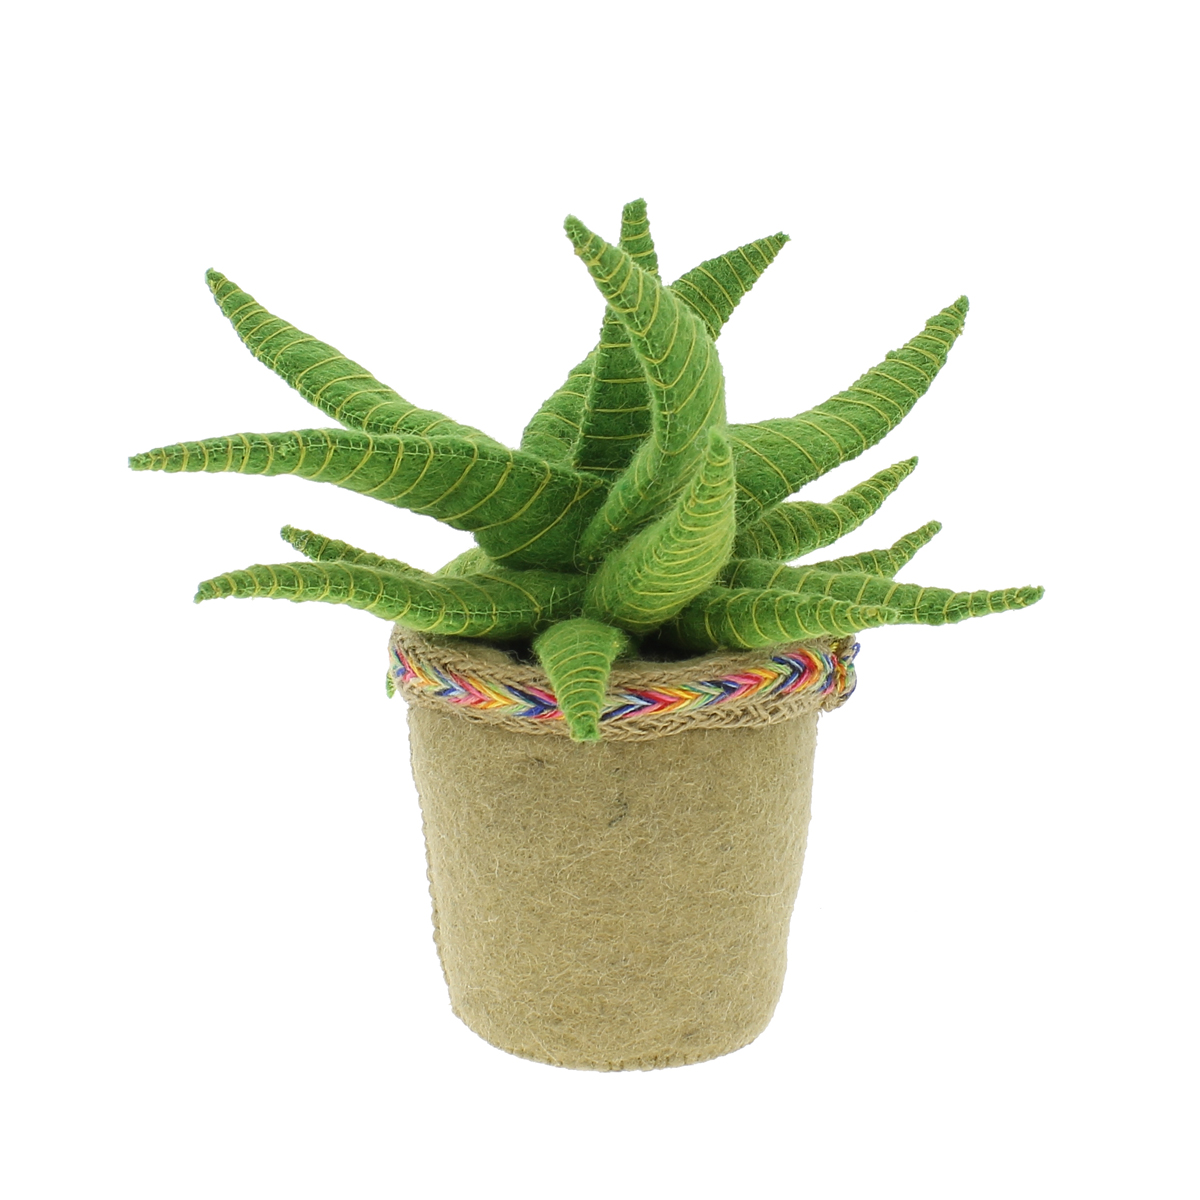 fiona walker england aloe vera cactus book stopper thetot. Black Bedroom Furniture Sets. Home Design Ideas